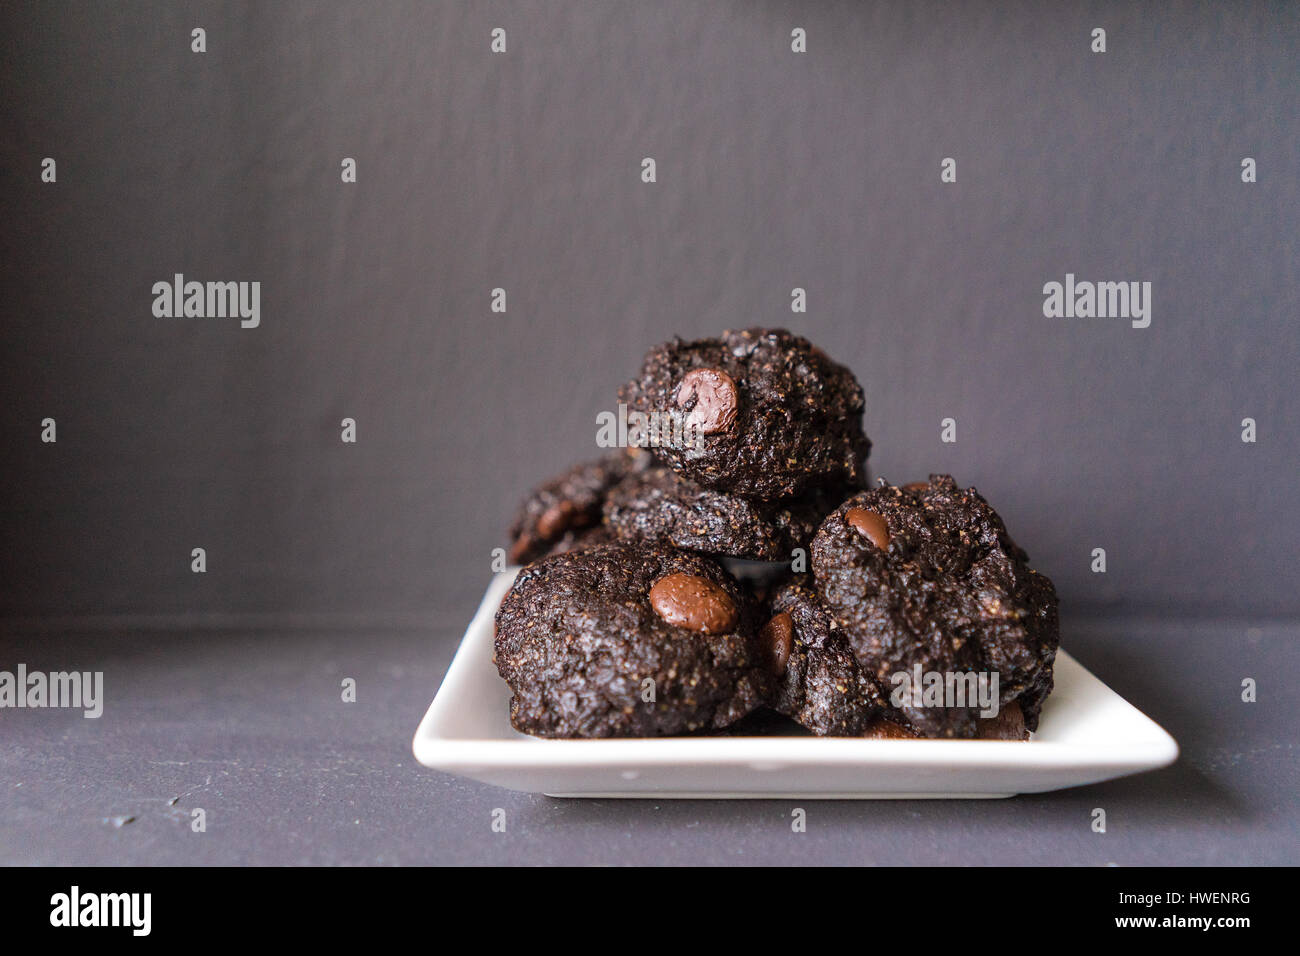 Stack of Vegan chocolate brownie cookie on white square plate Stock Photo